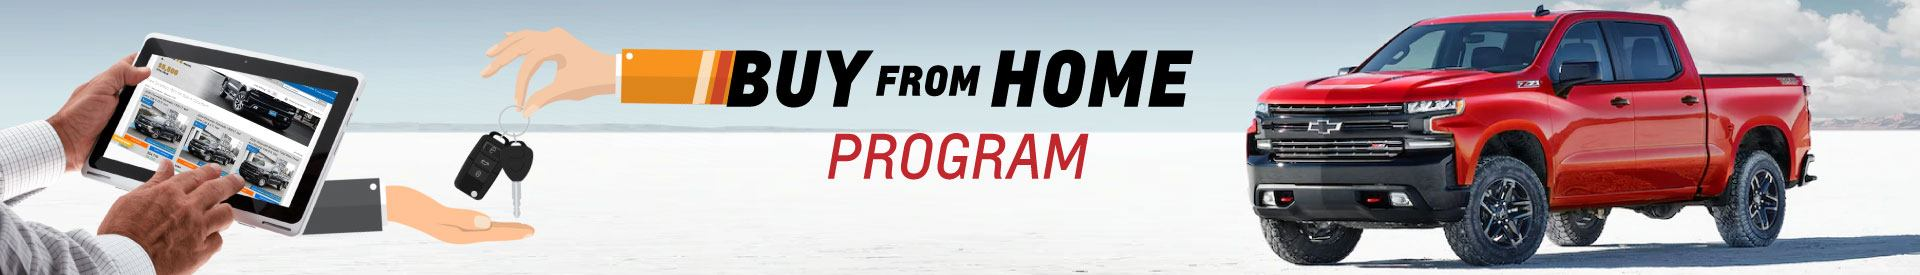 buy from home program